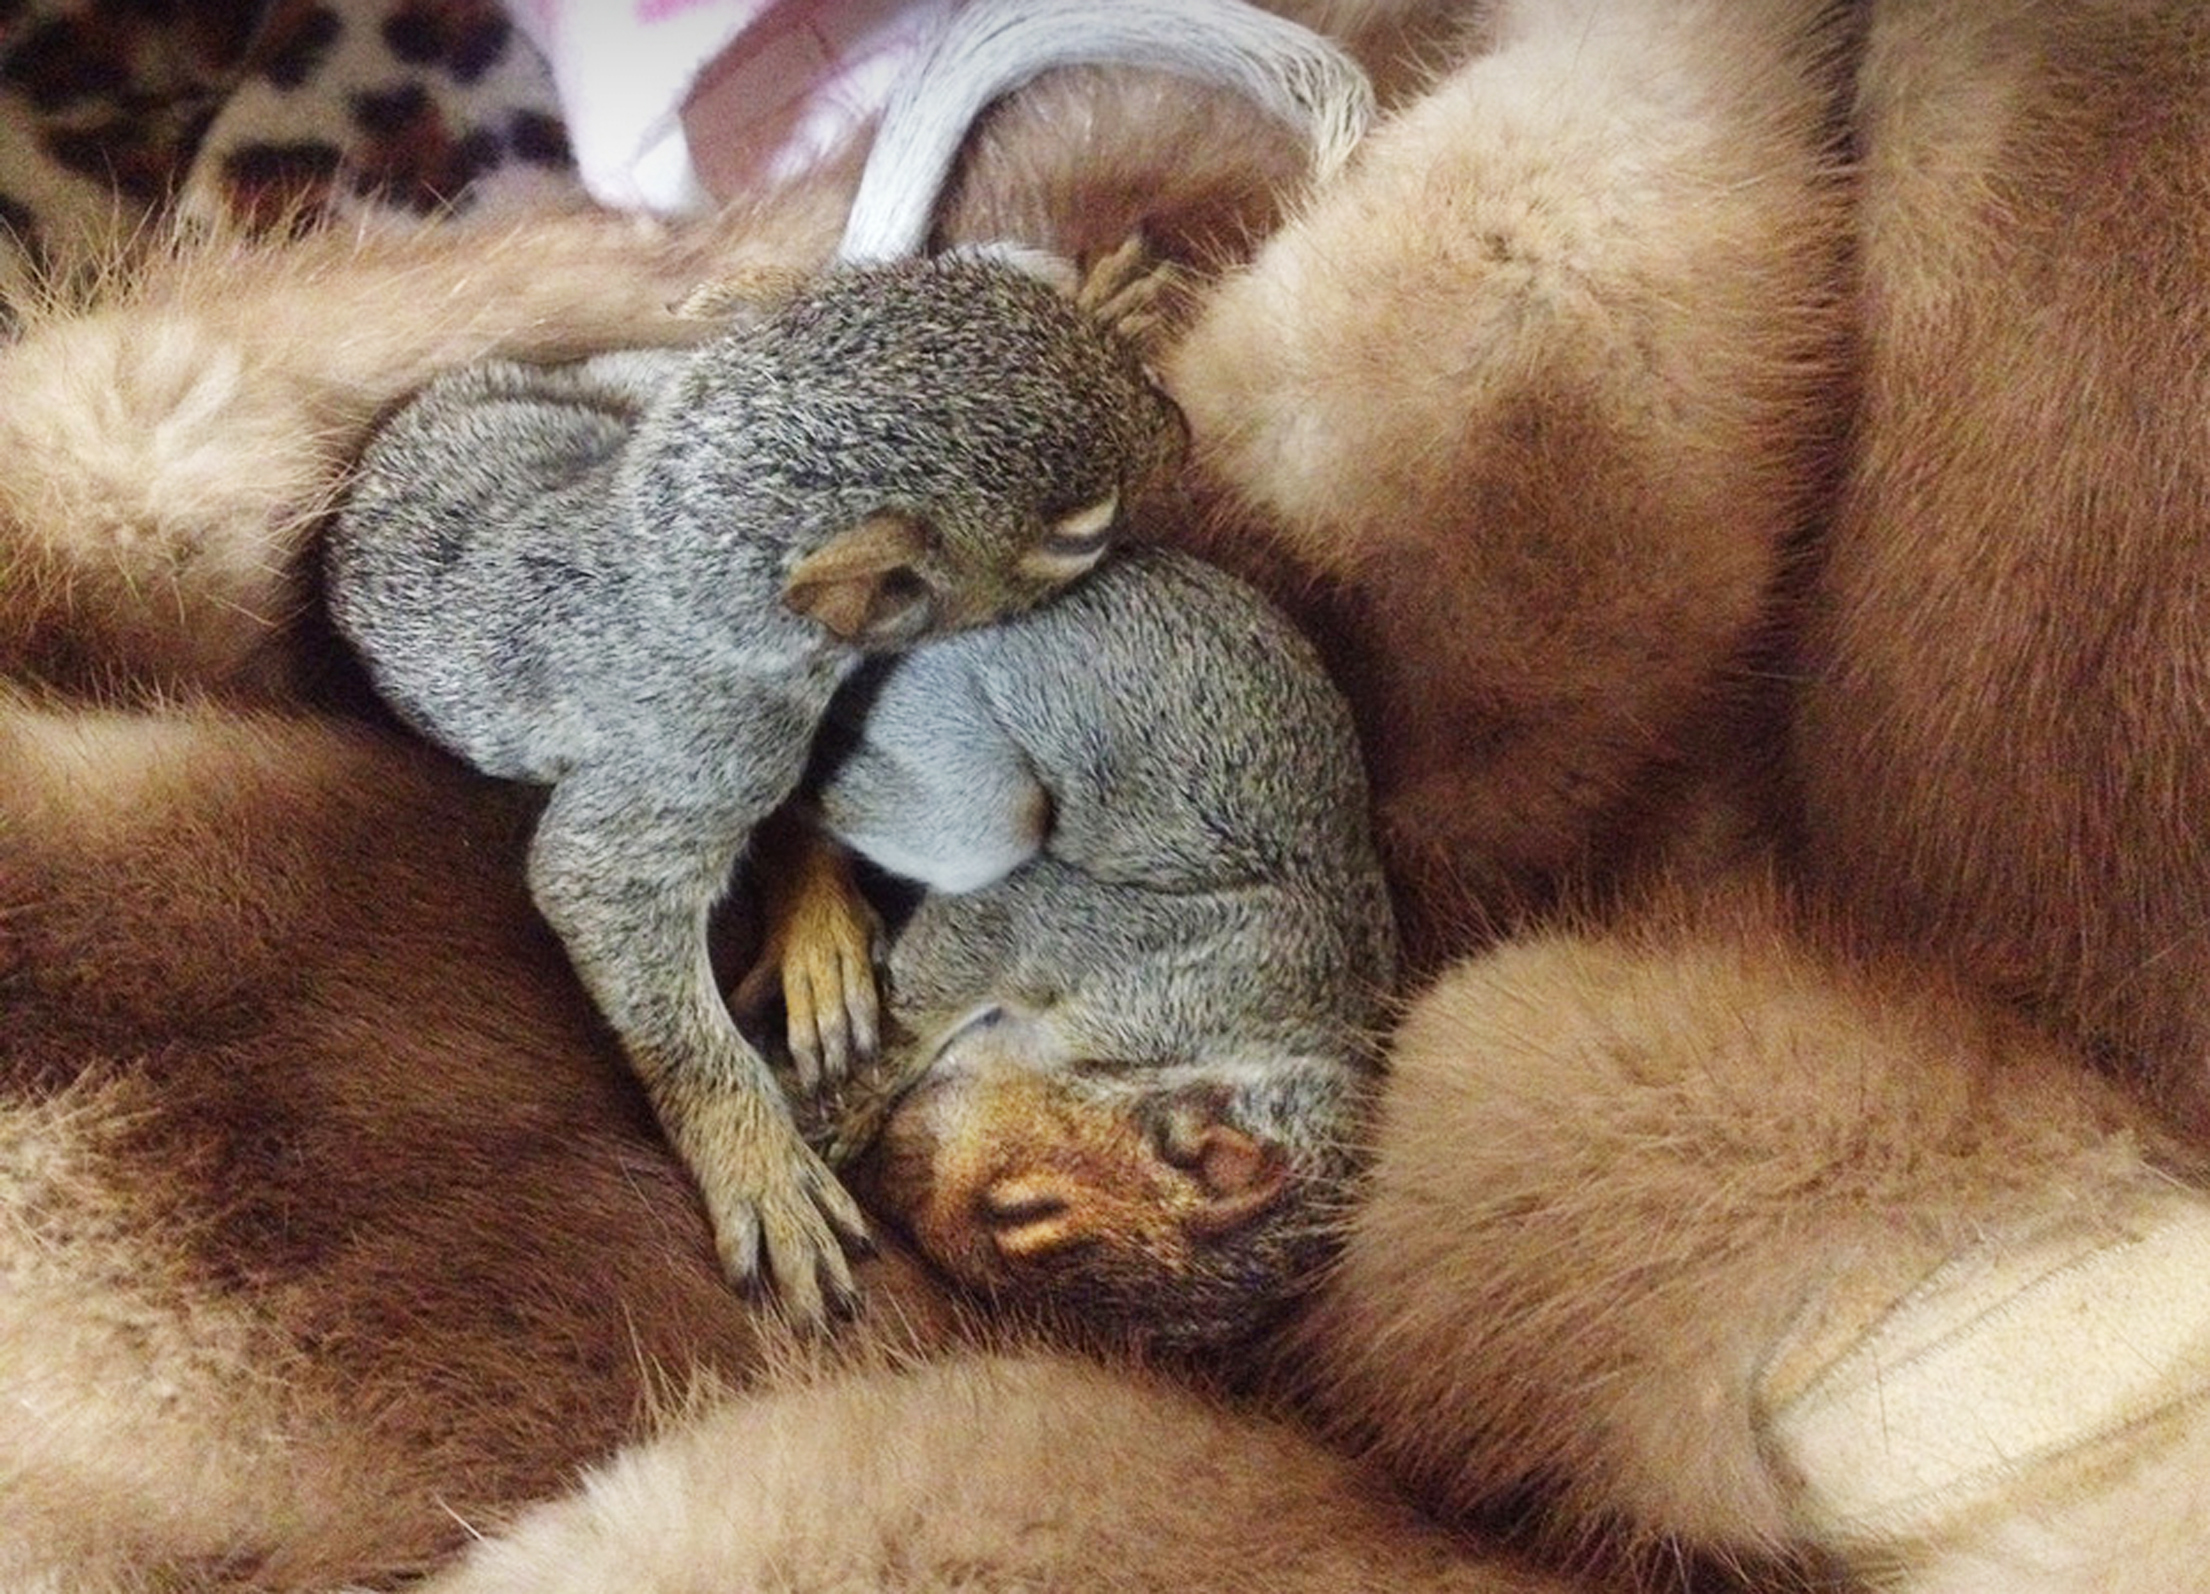 Squirrels from Animal Rescue League  Squirrels from Animal Rescue League asleep on fur.